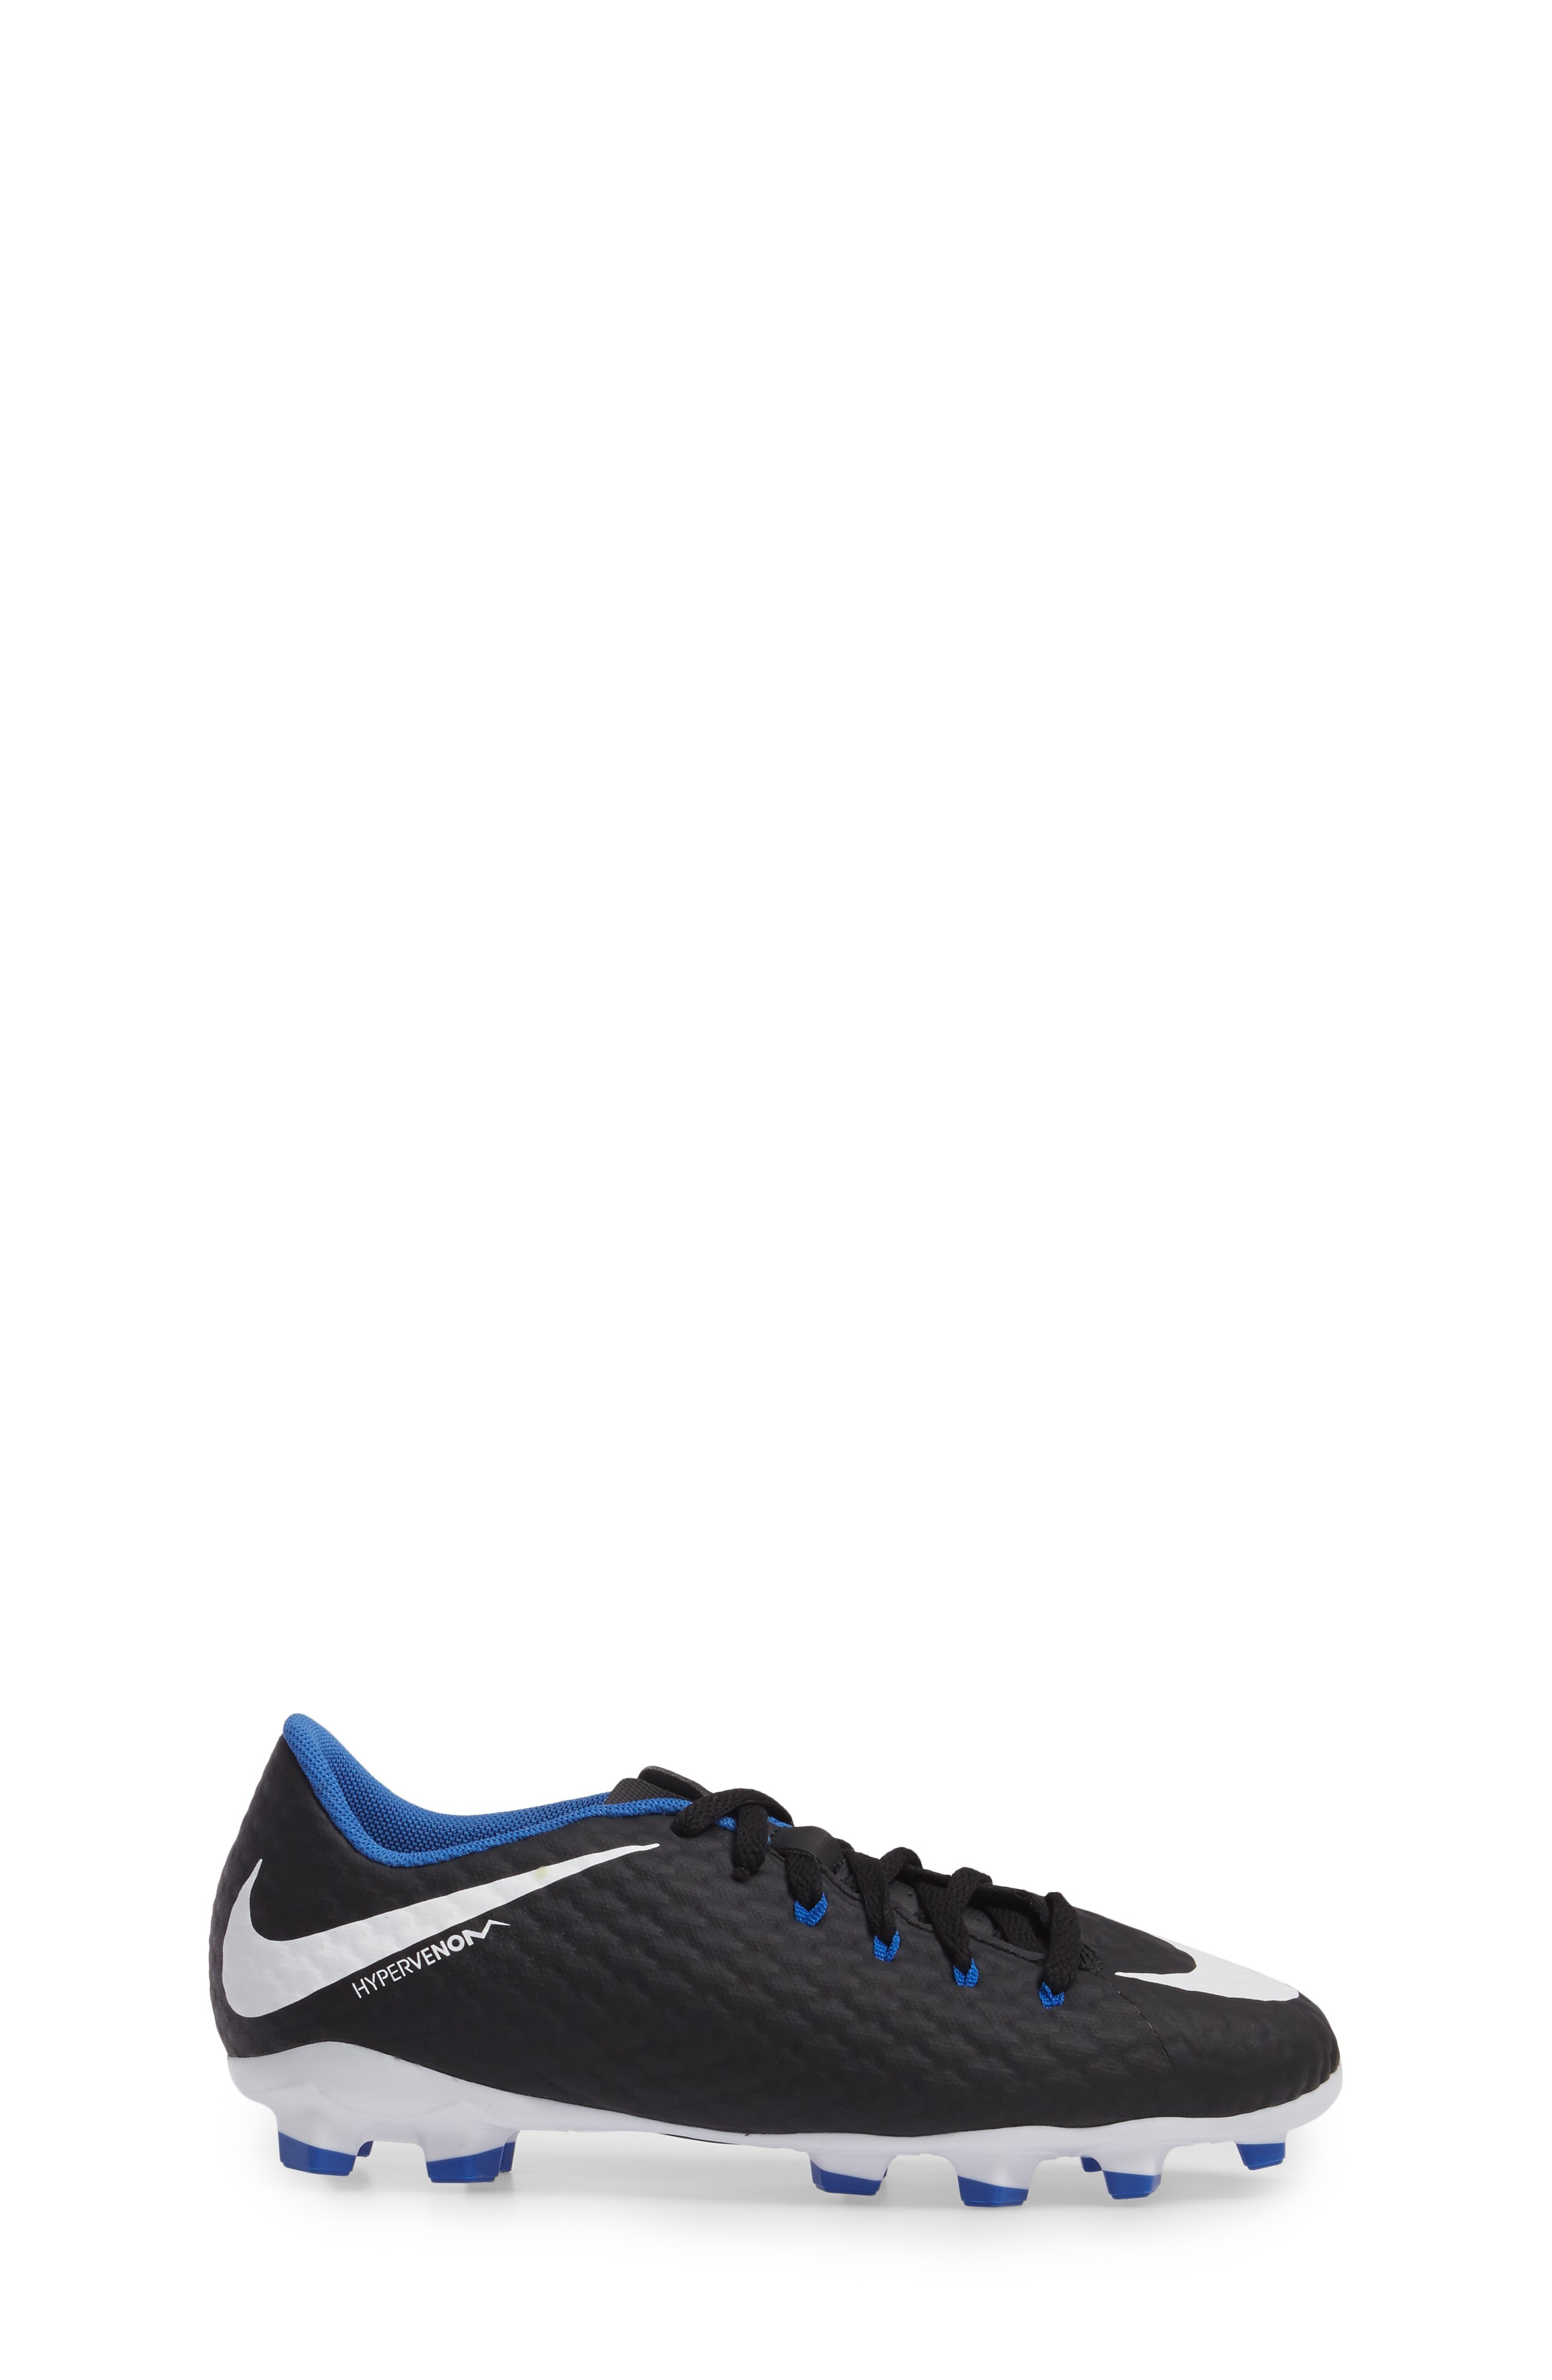 関税送料込みNike Hypervenom Phelon III Firm-Ground Socc 人気